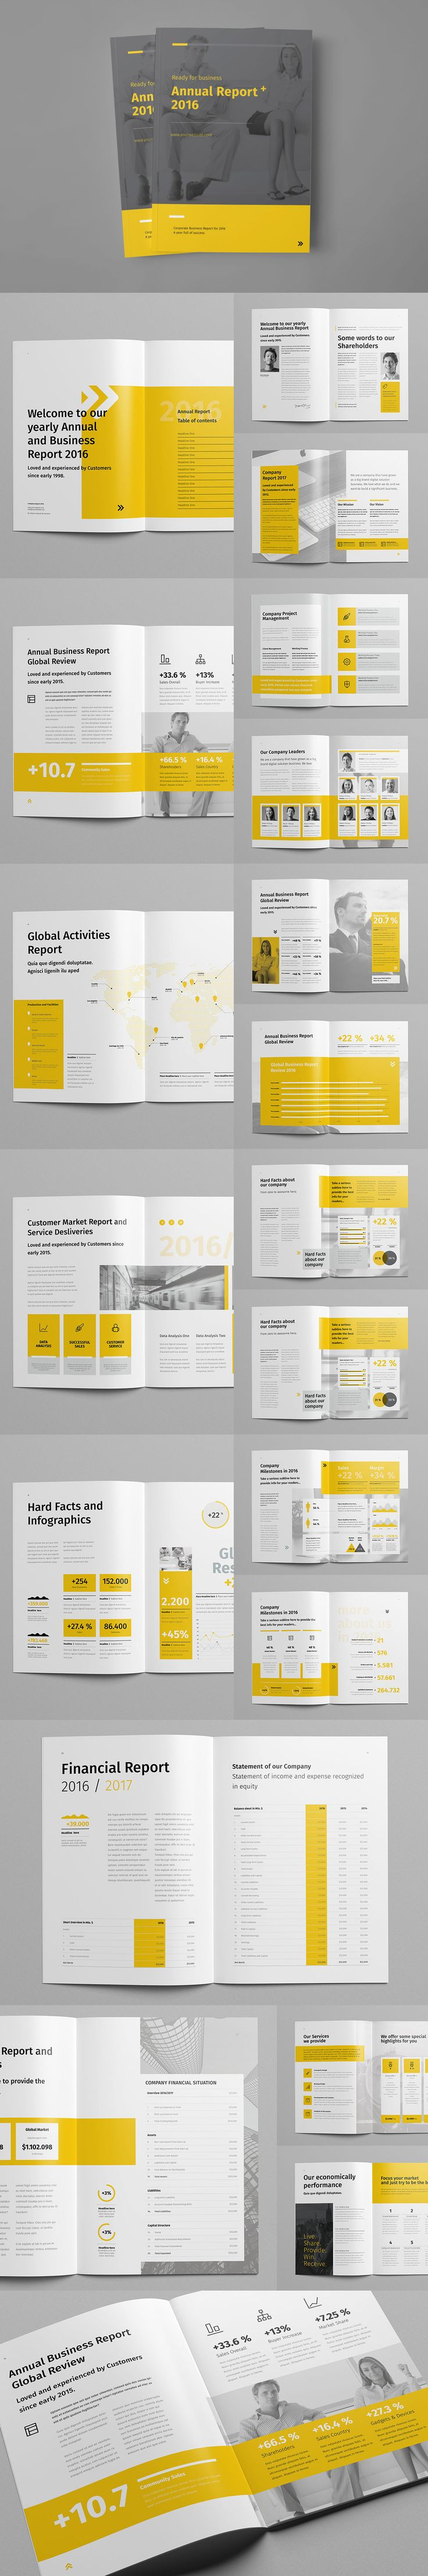 Minimal and Professional Annual Report Design Template InDesign INDD - 44 Pages, A4 & US Letter size